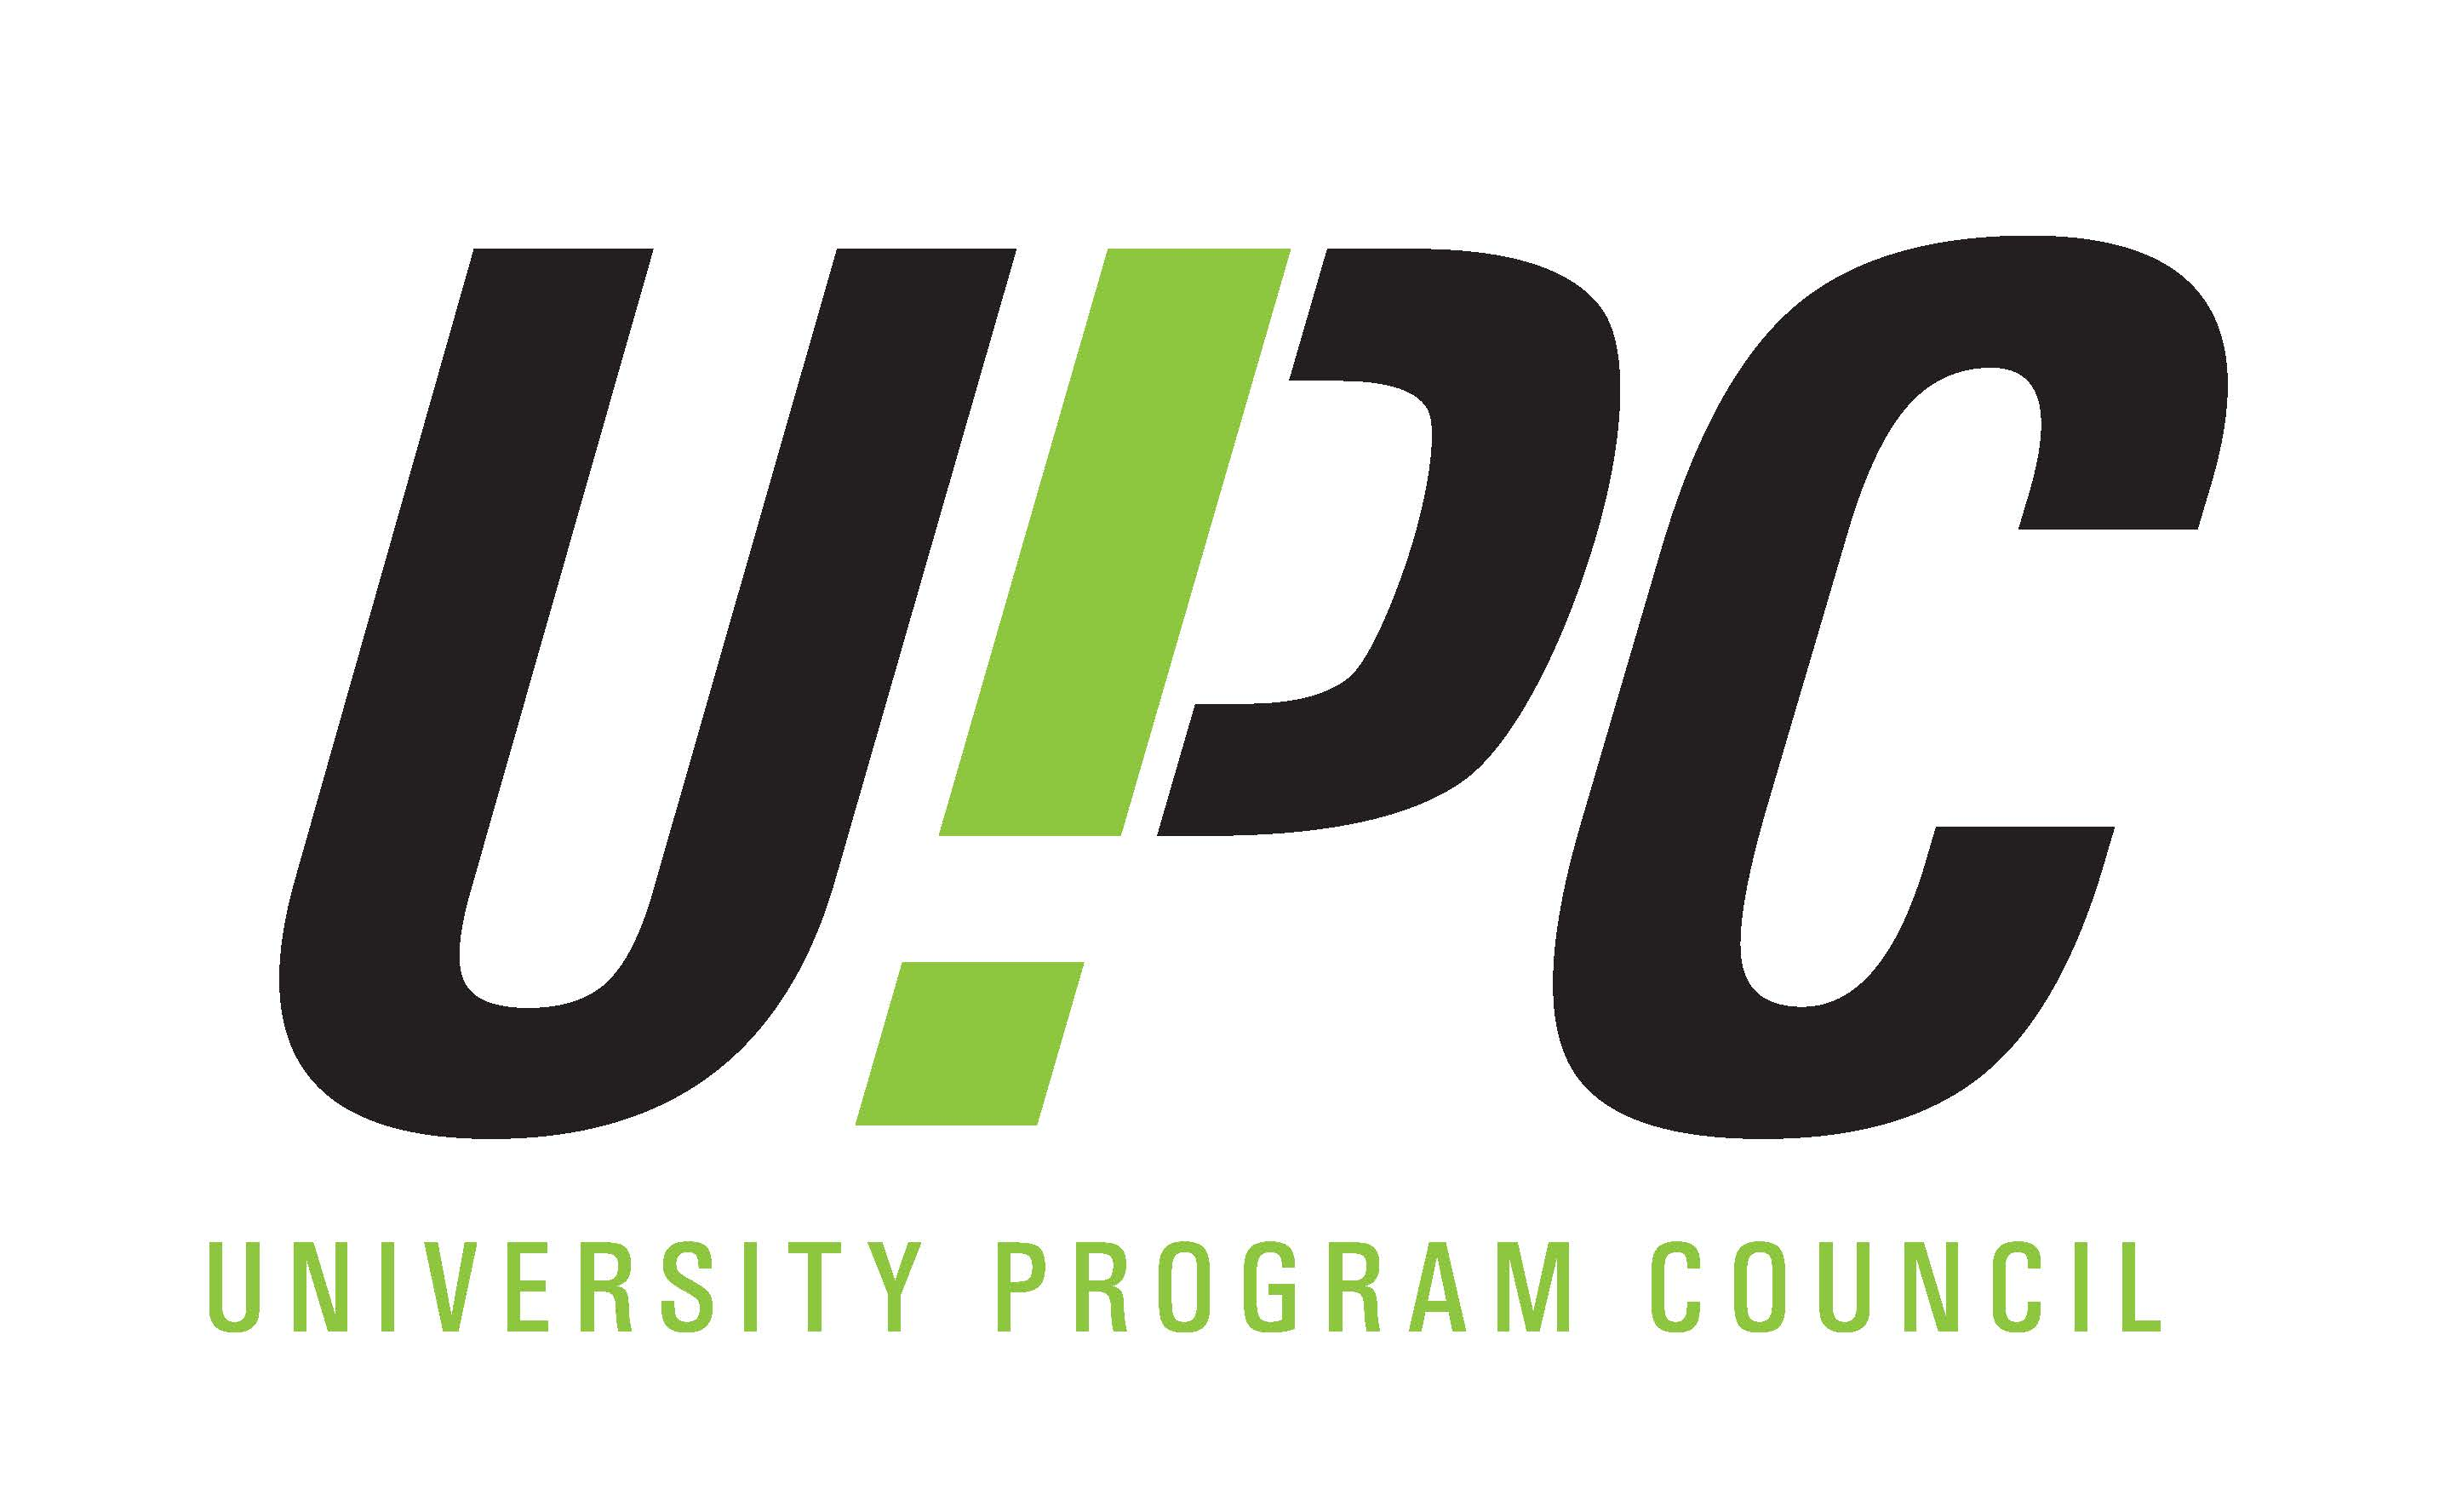 UPC - University Program Council